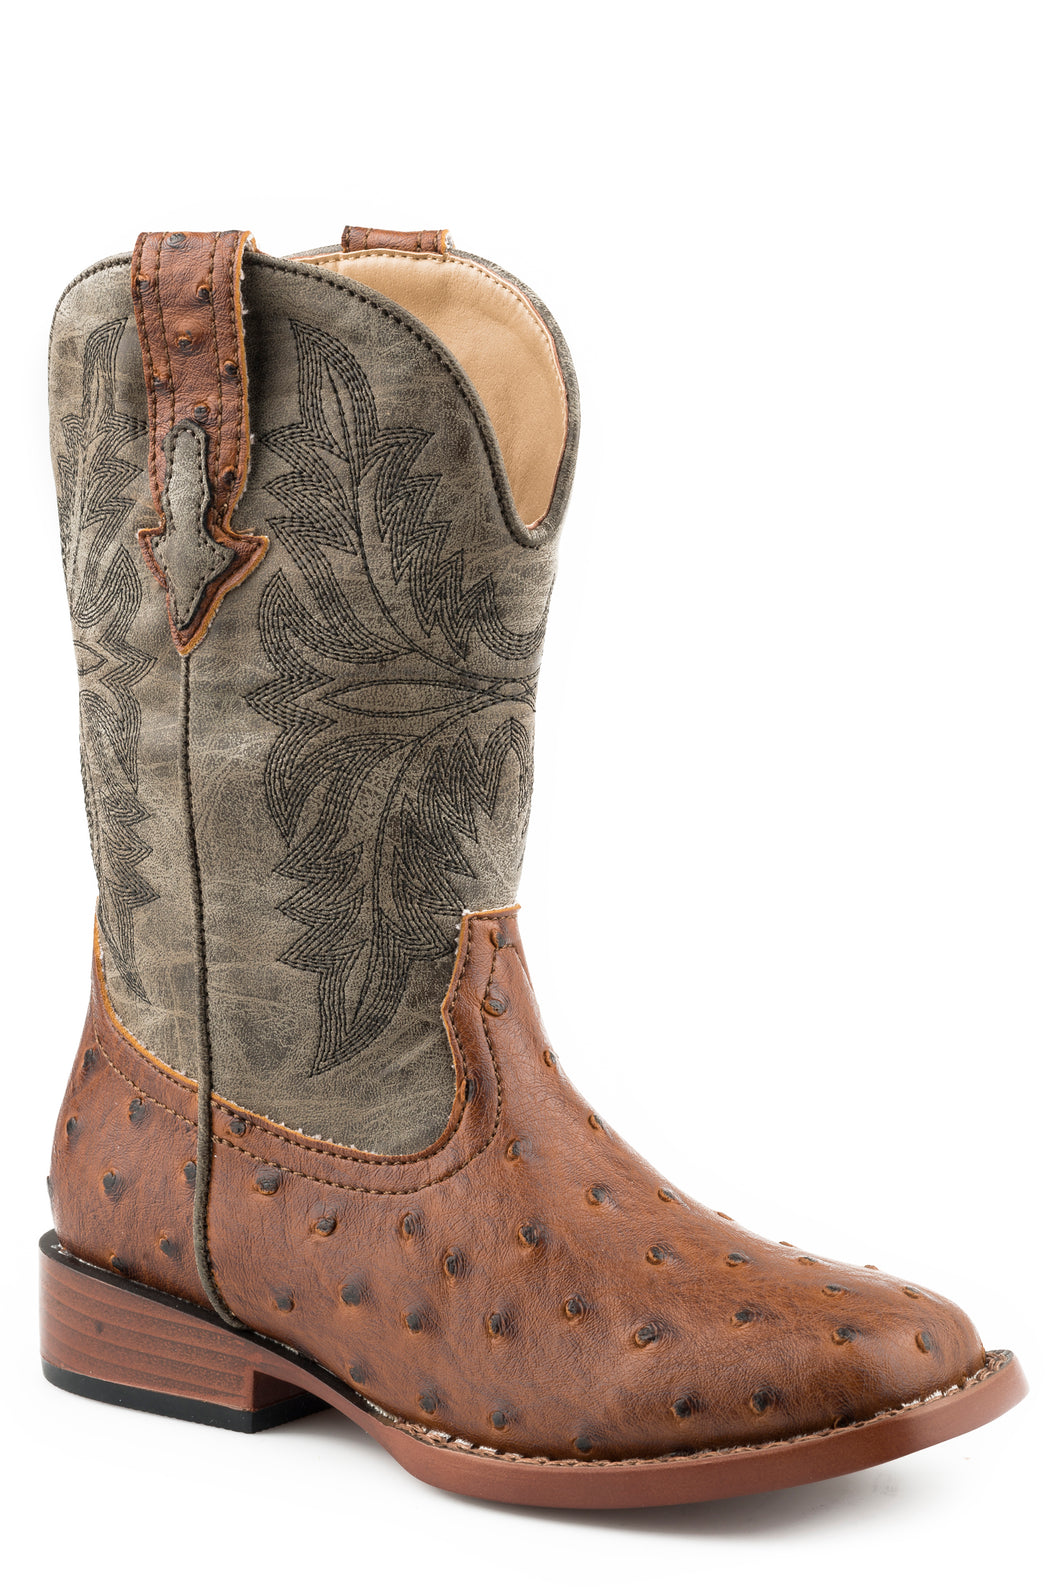 Bumps Boot Toddlers Boots Tan Faux Ostrich Vamp Boot